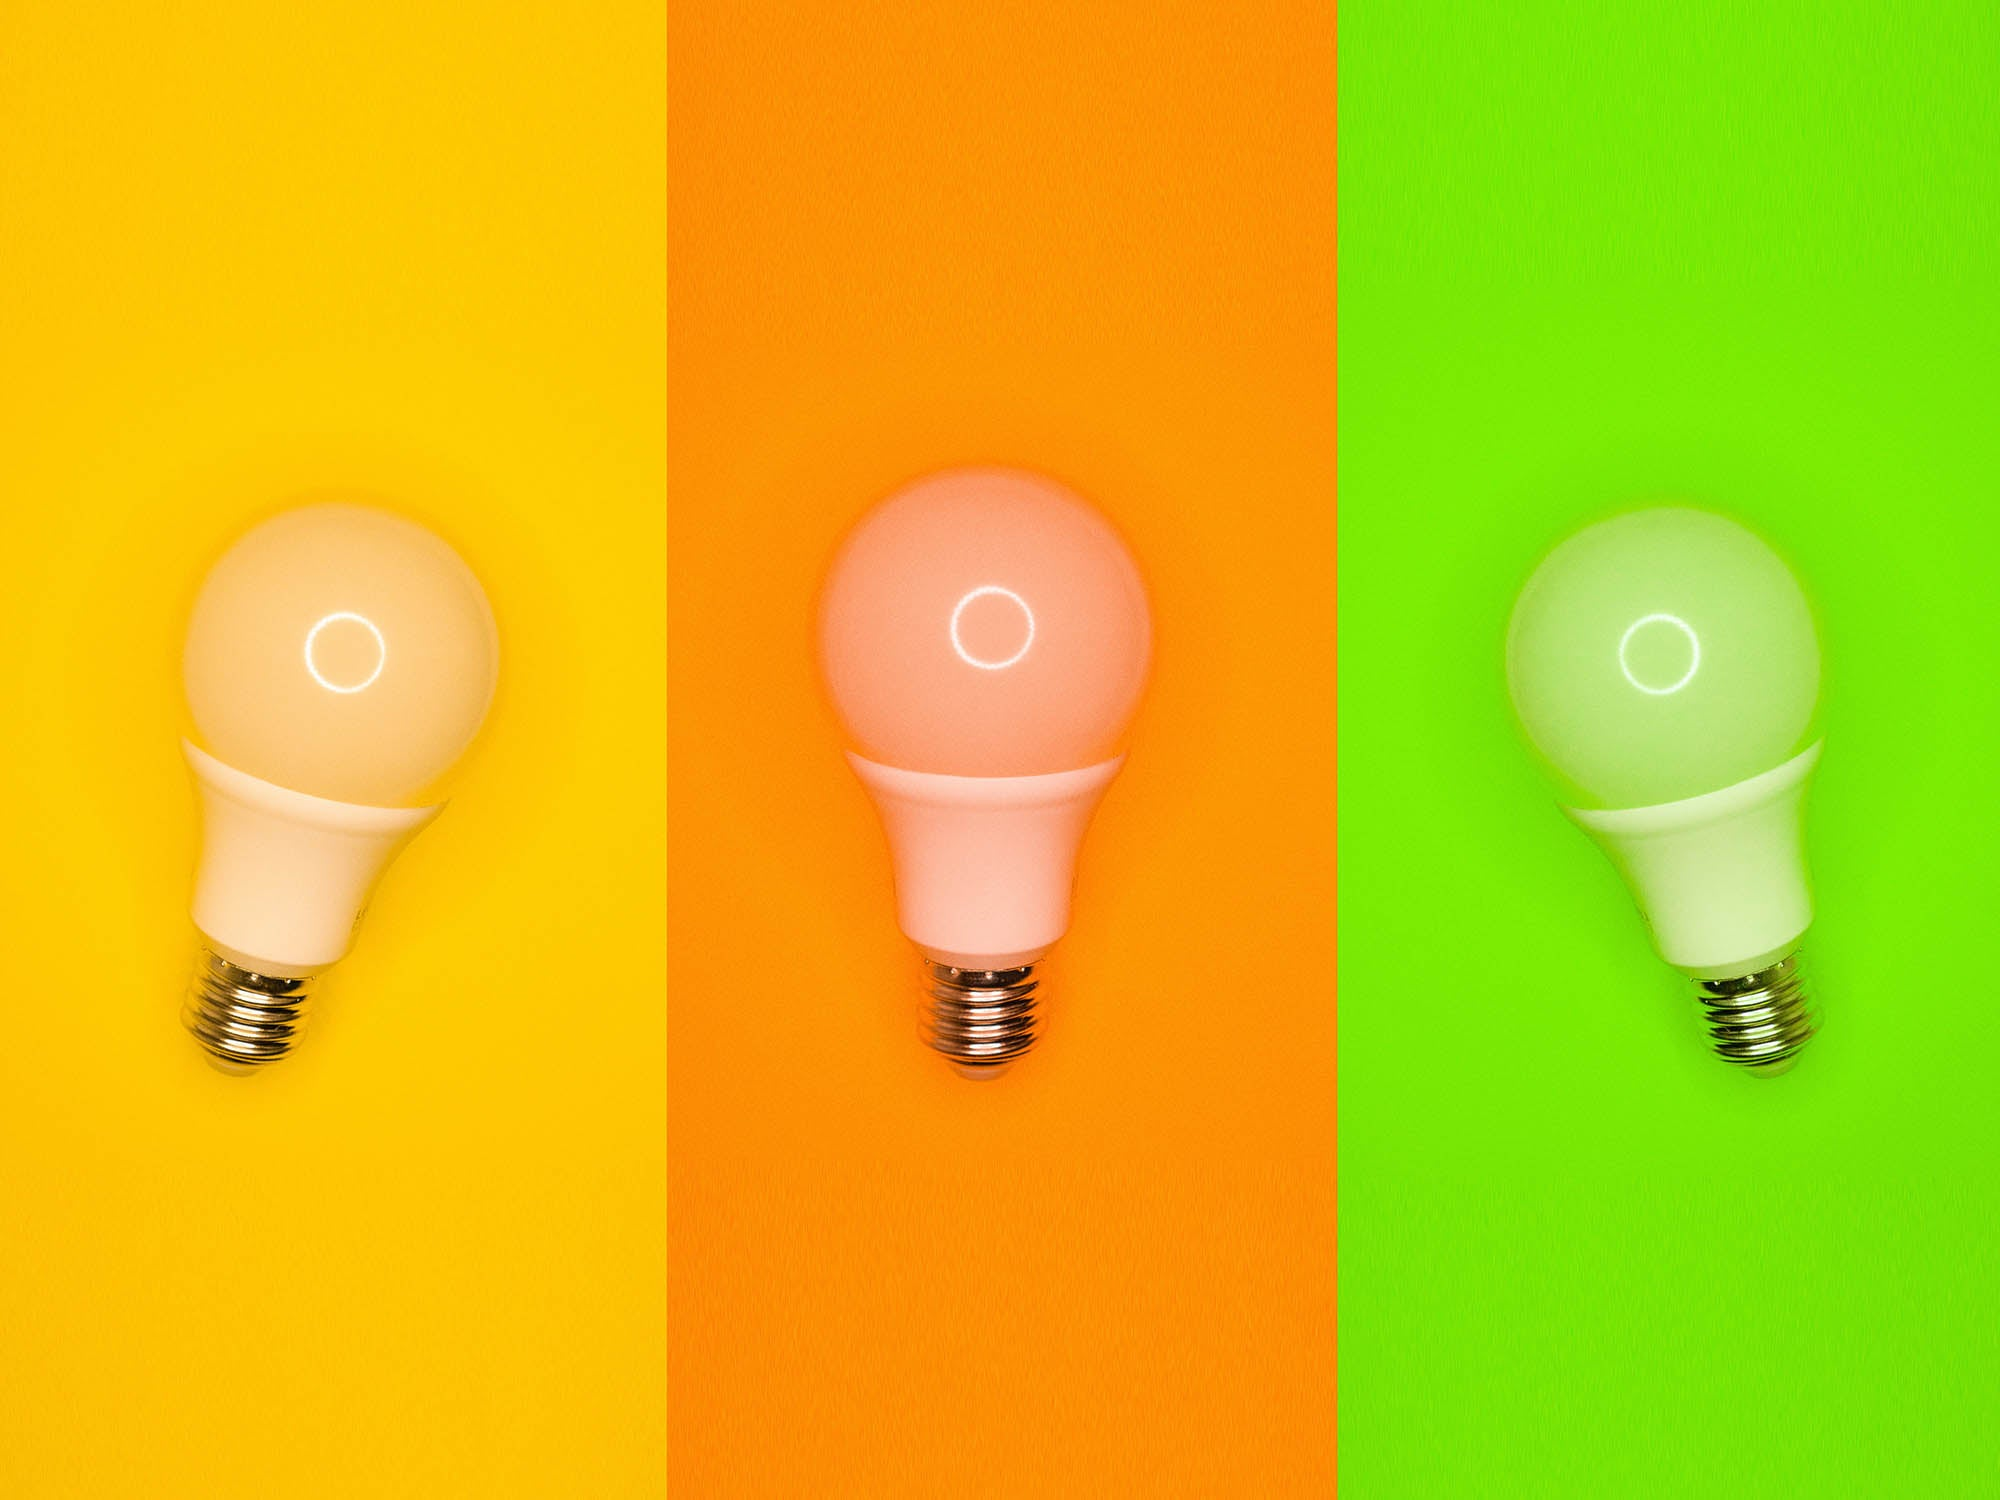 Smart lightbulbs